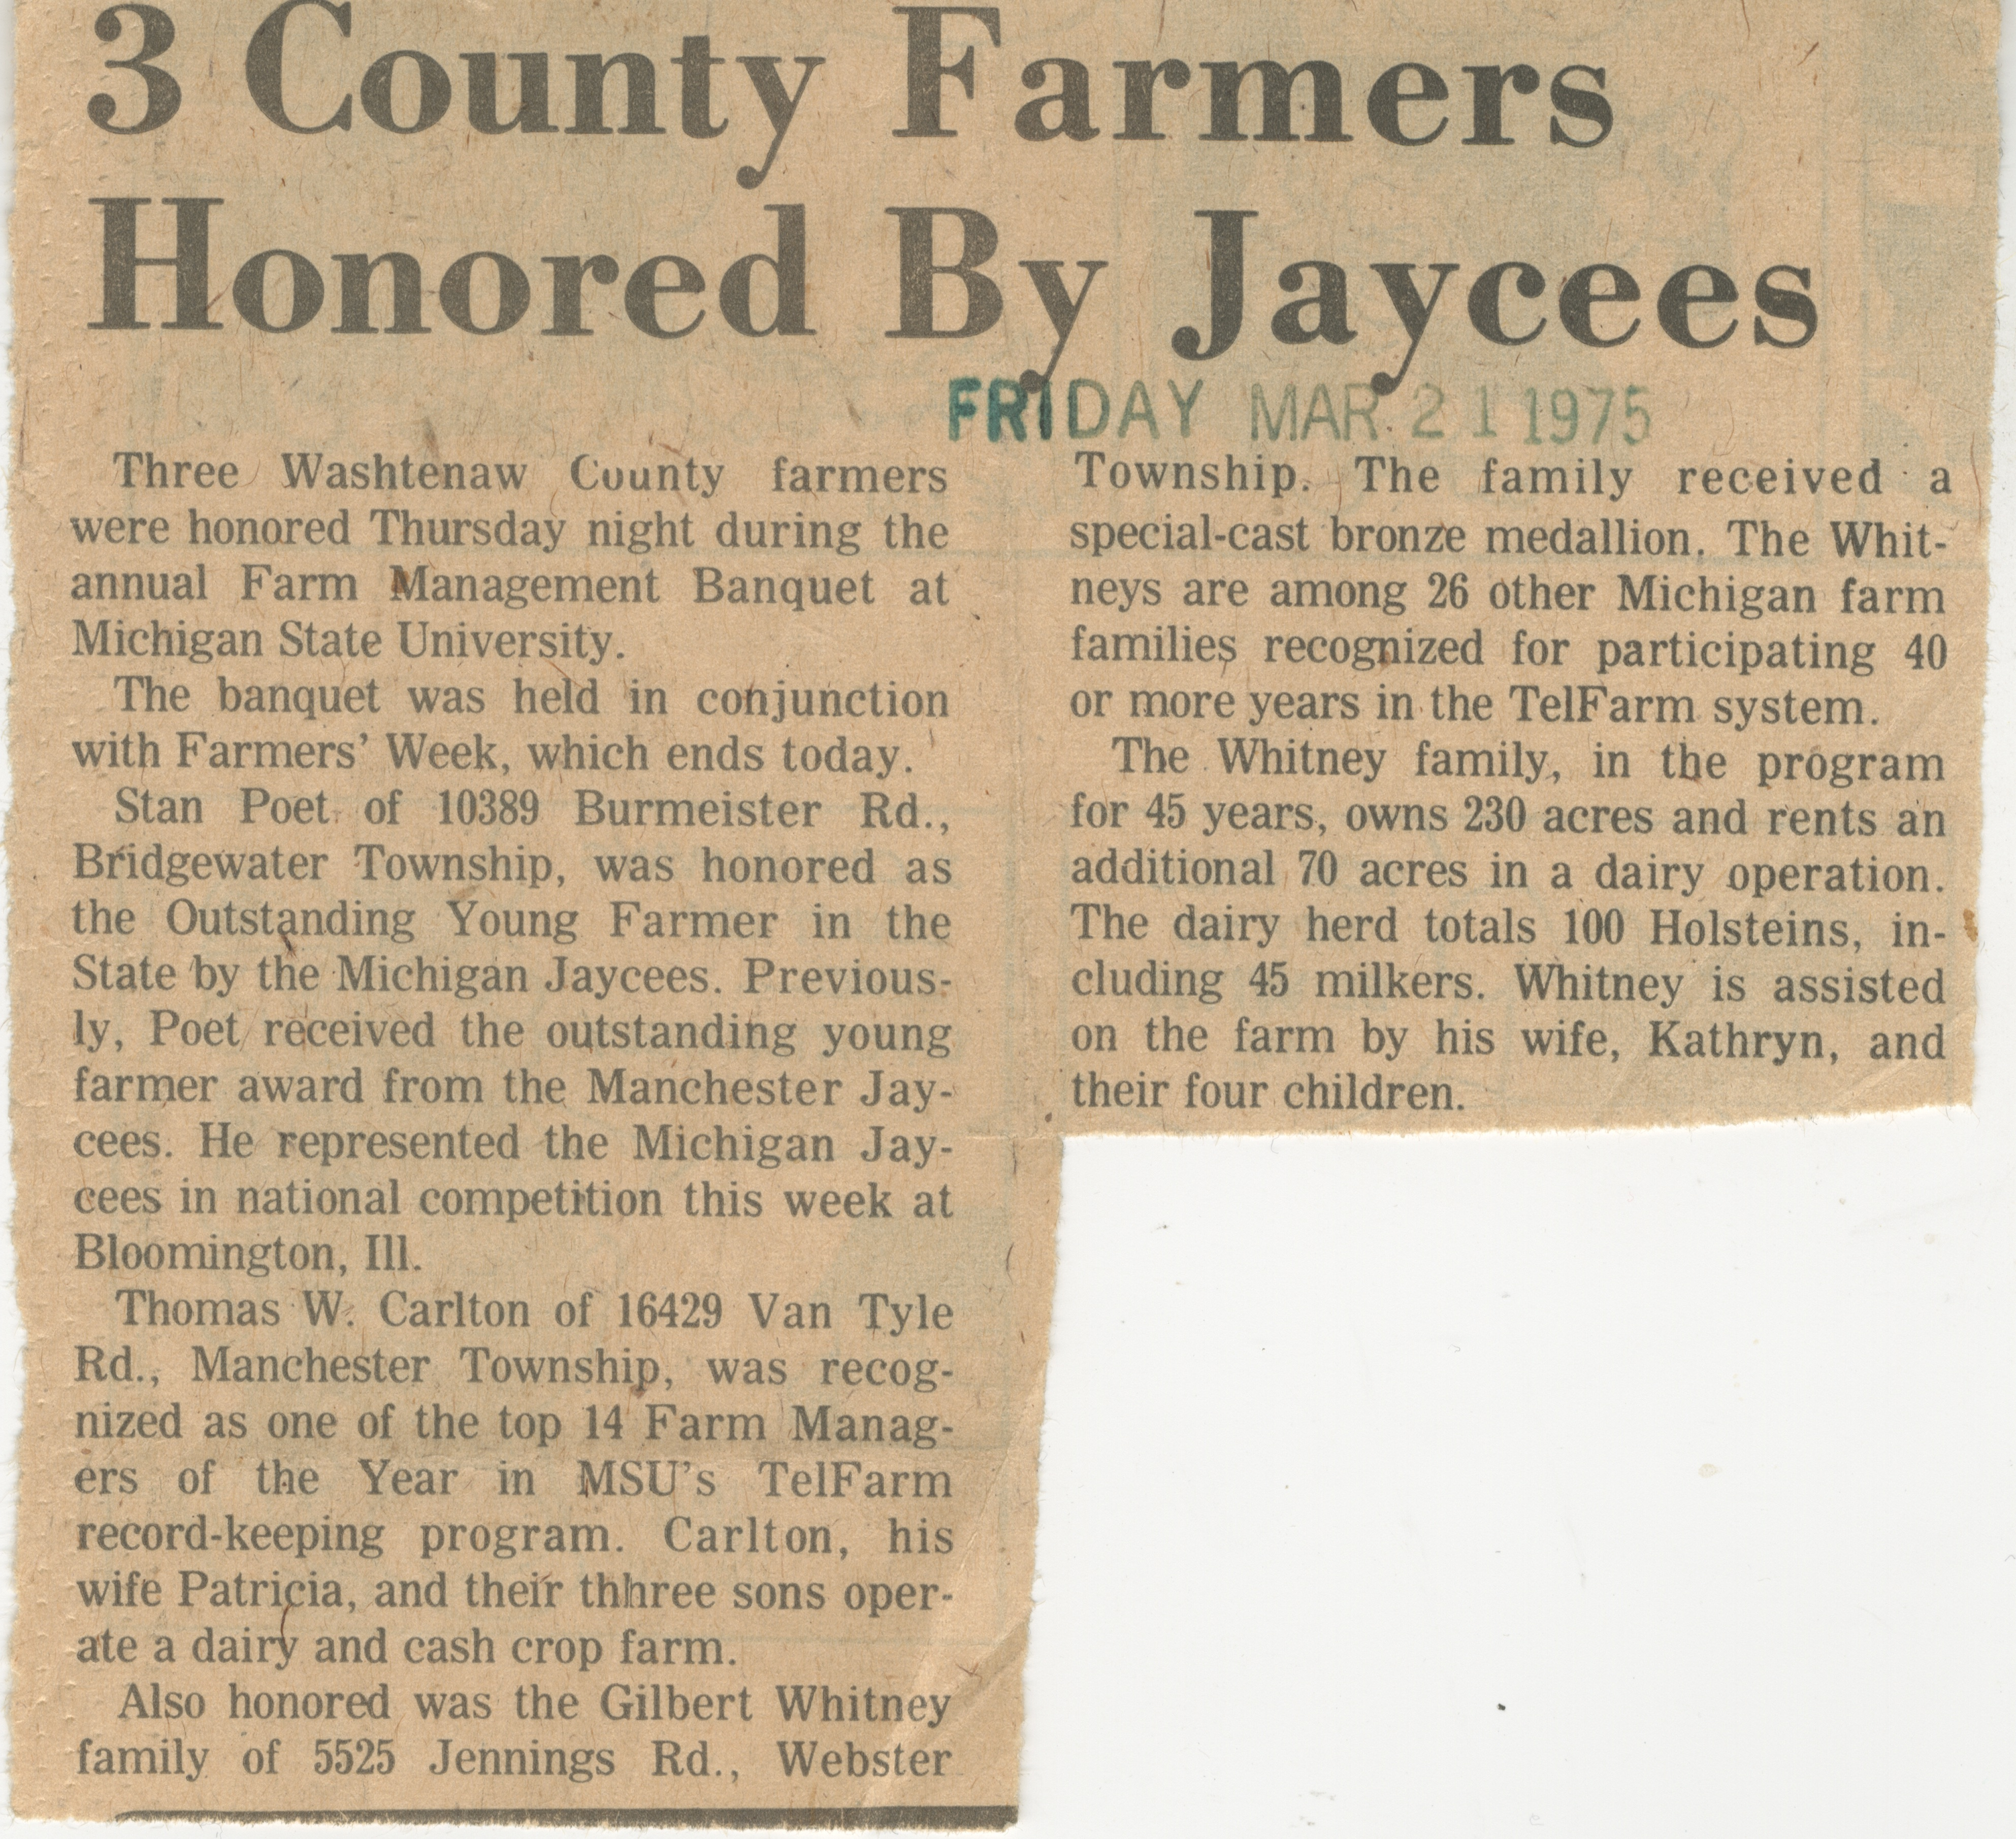 3 County Farmers Honored By Jaycees image